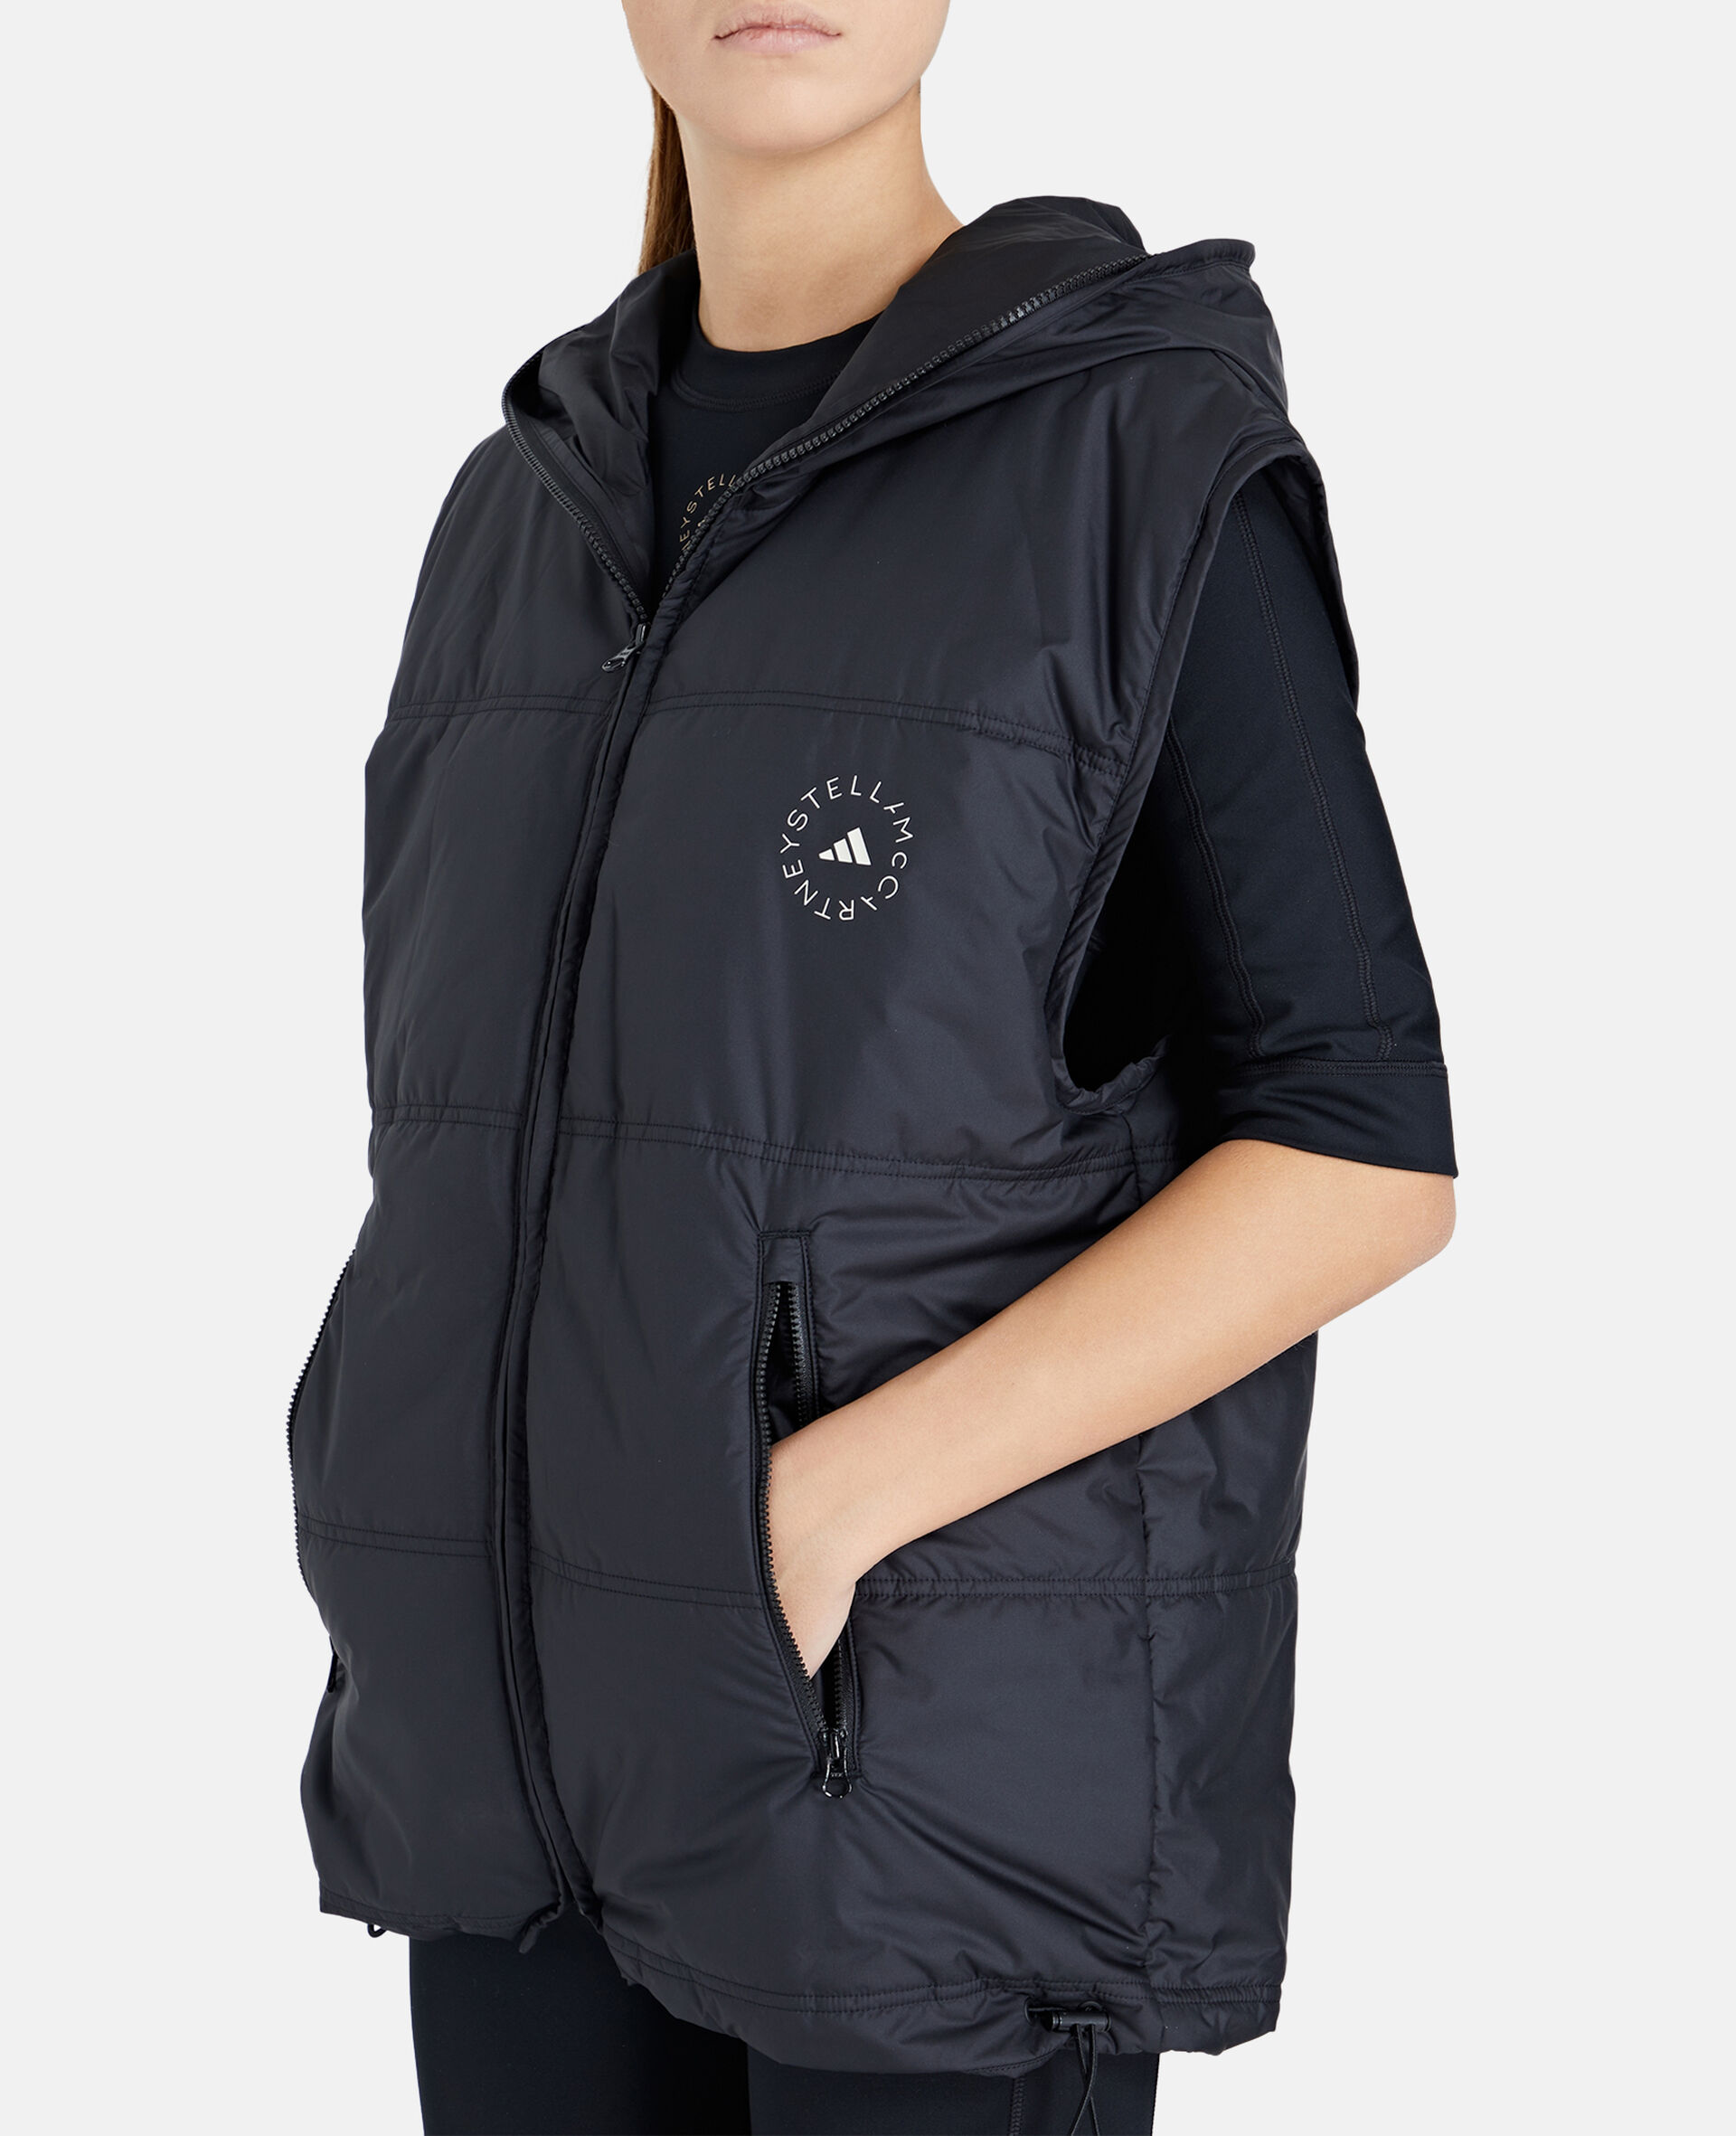 2-in-1 Mid-Length Padded Jacket-Black-large image number 3